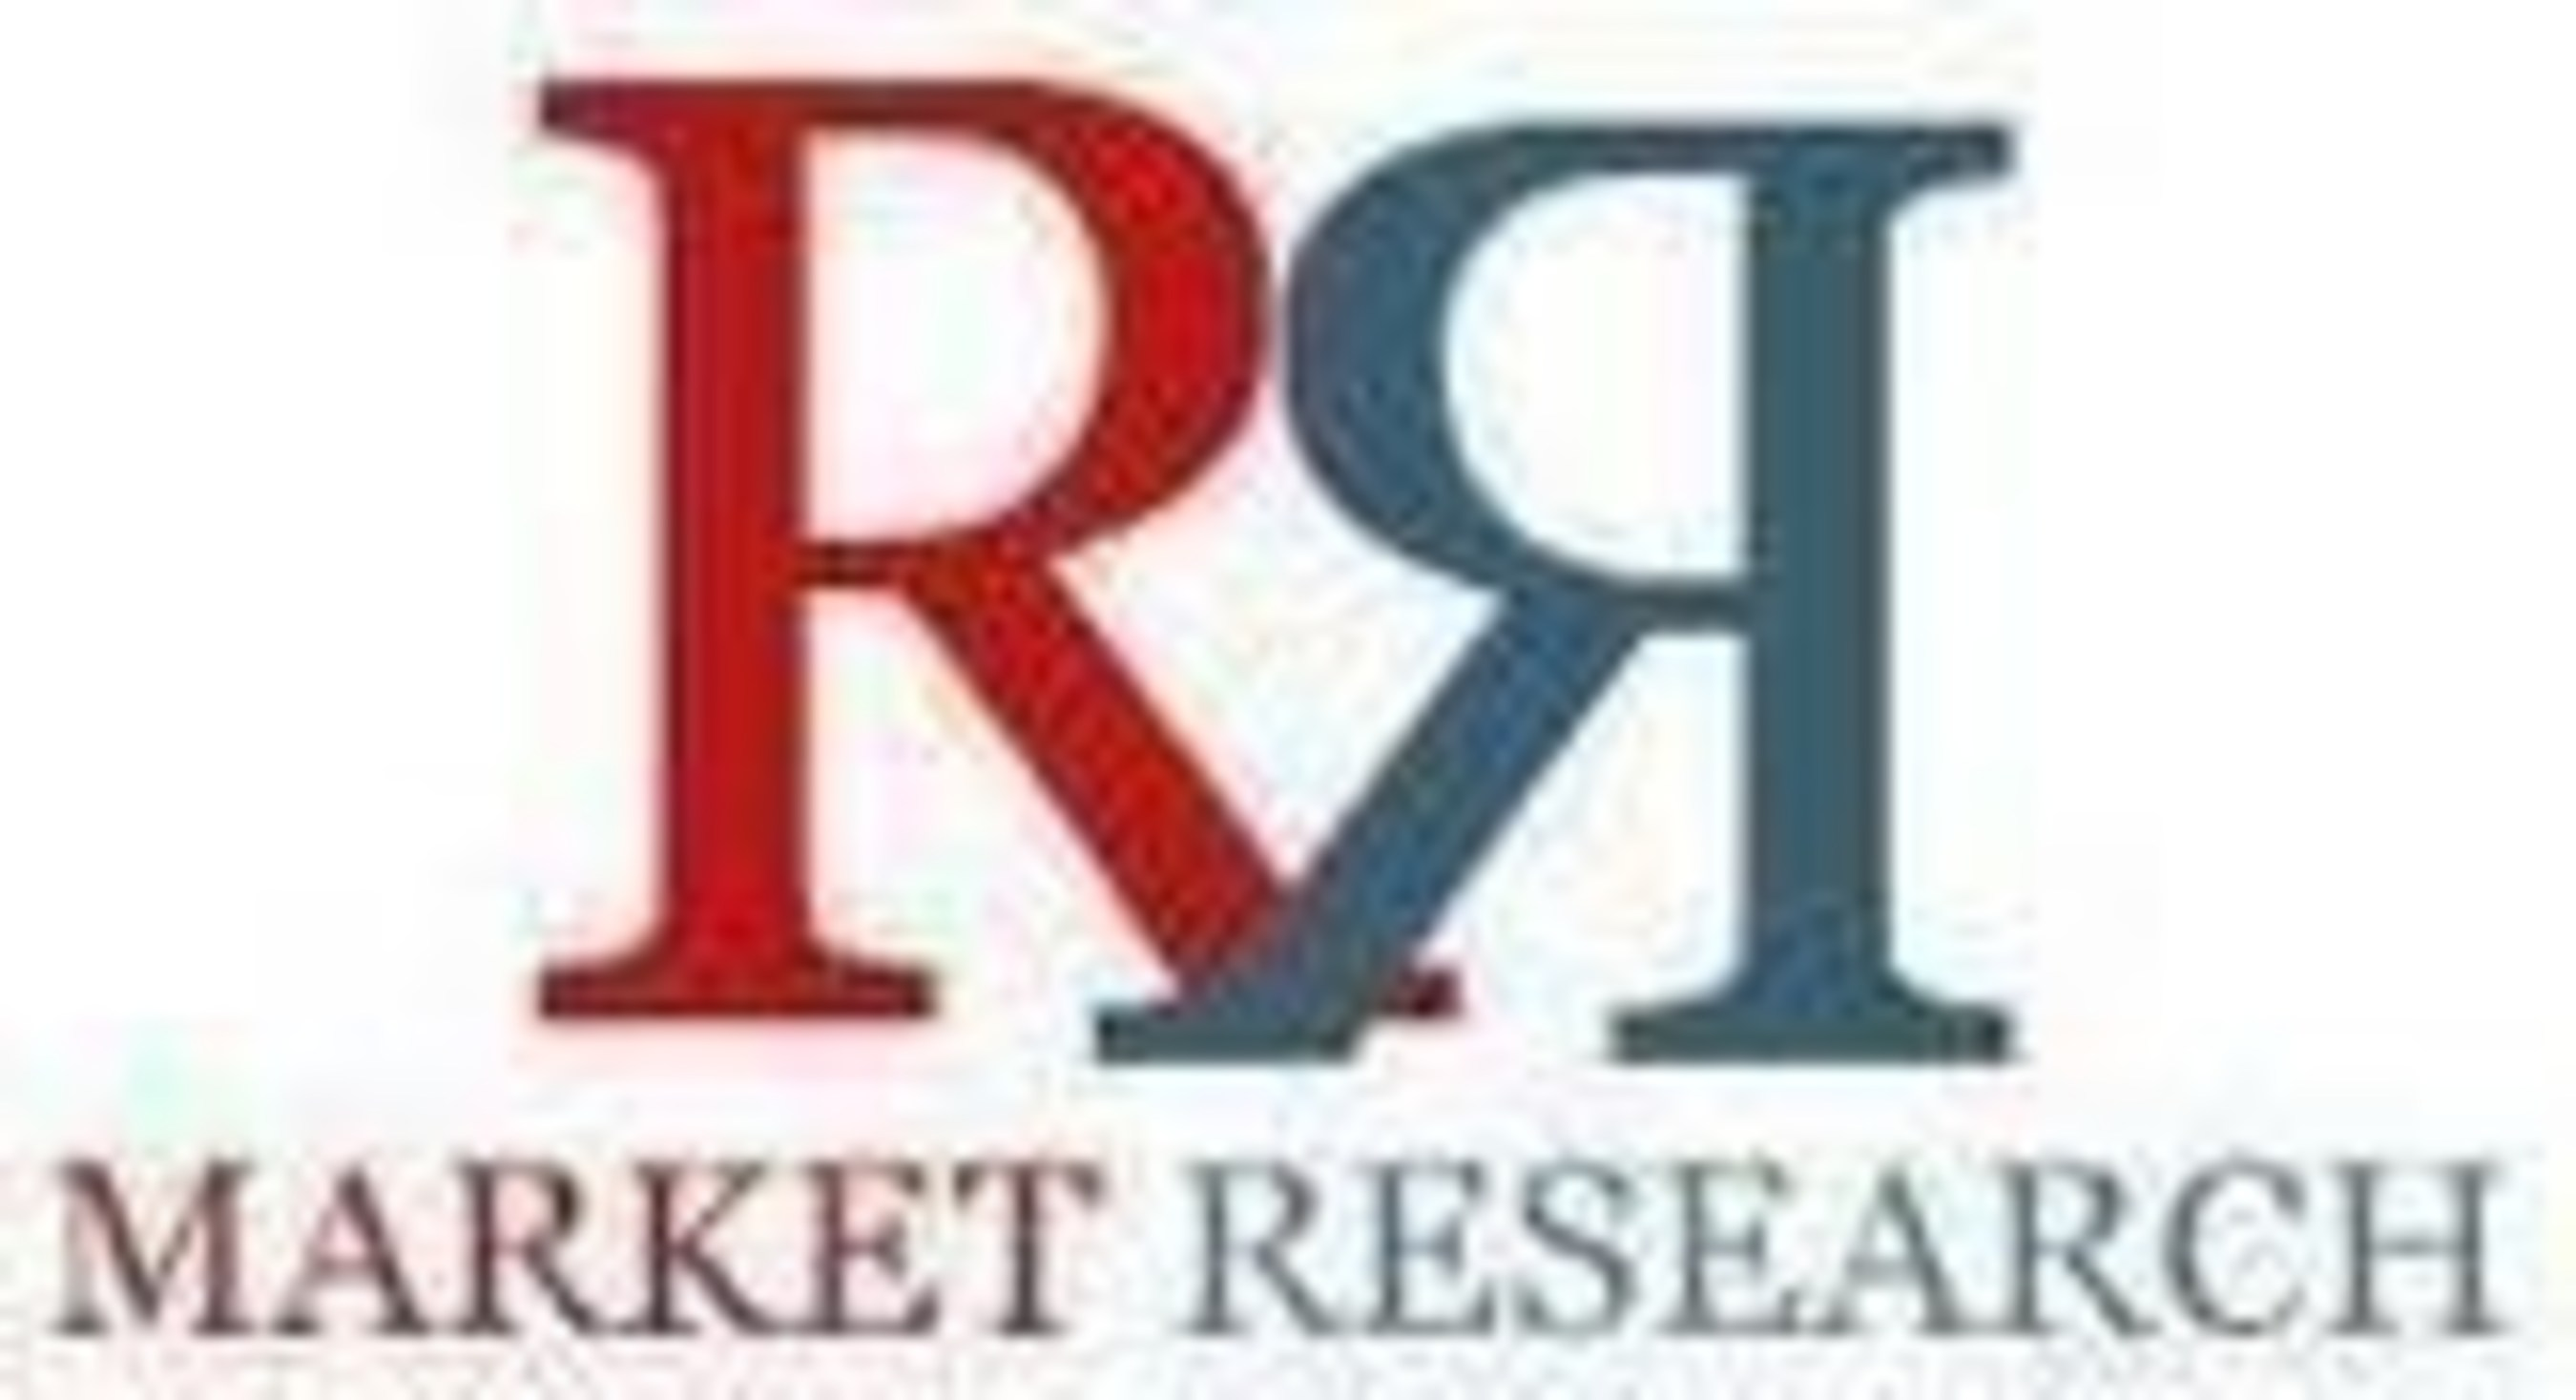 Hybrid Cloud Market 2021 Growth Forecast: 22.5% CAGR Led by North America